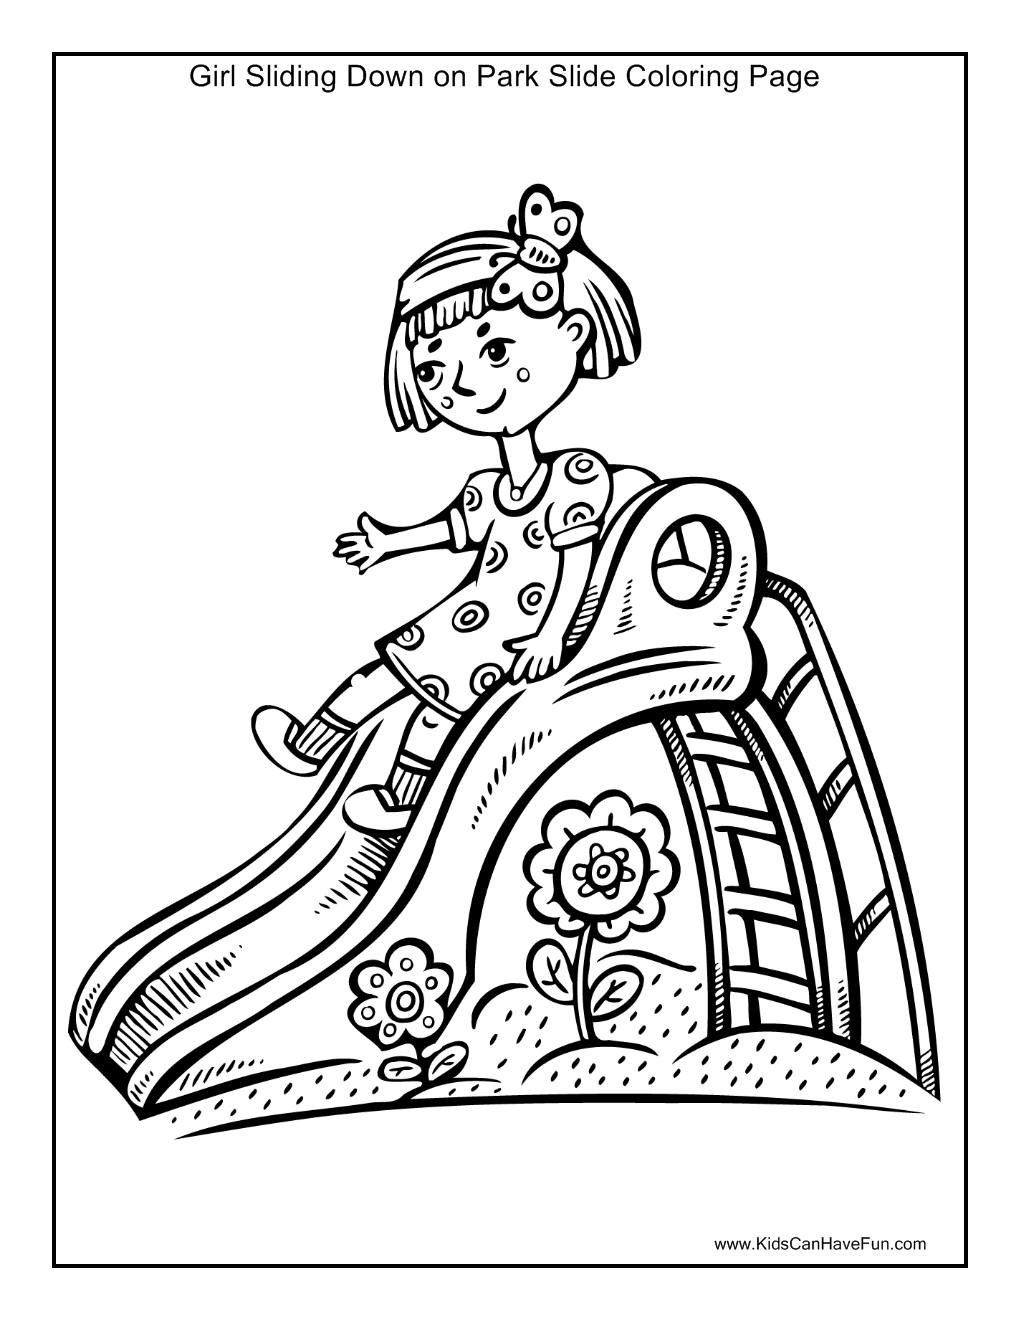 water slide coloring pages - photo#32